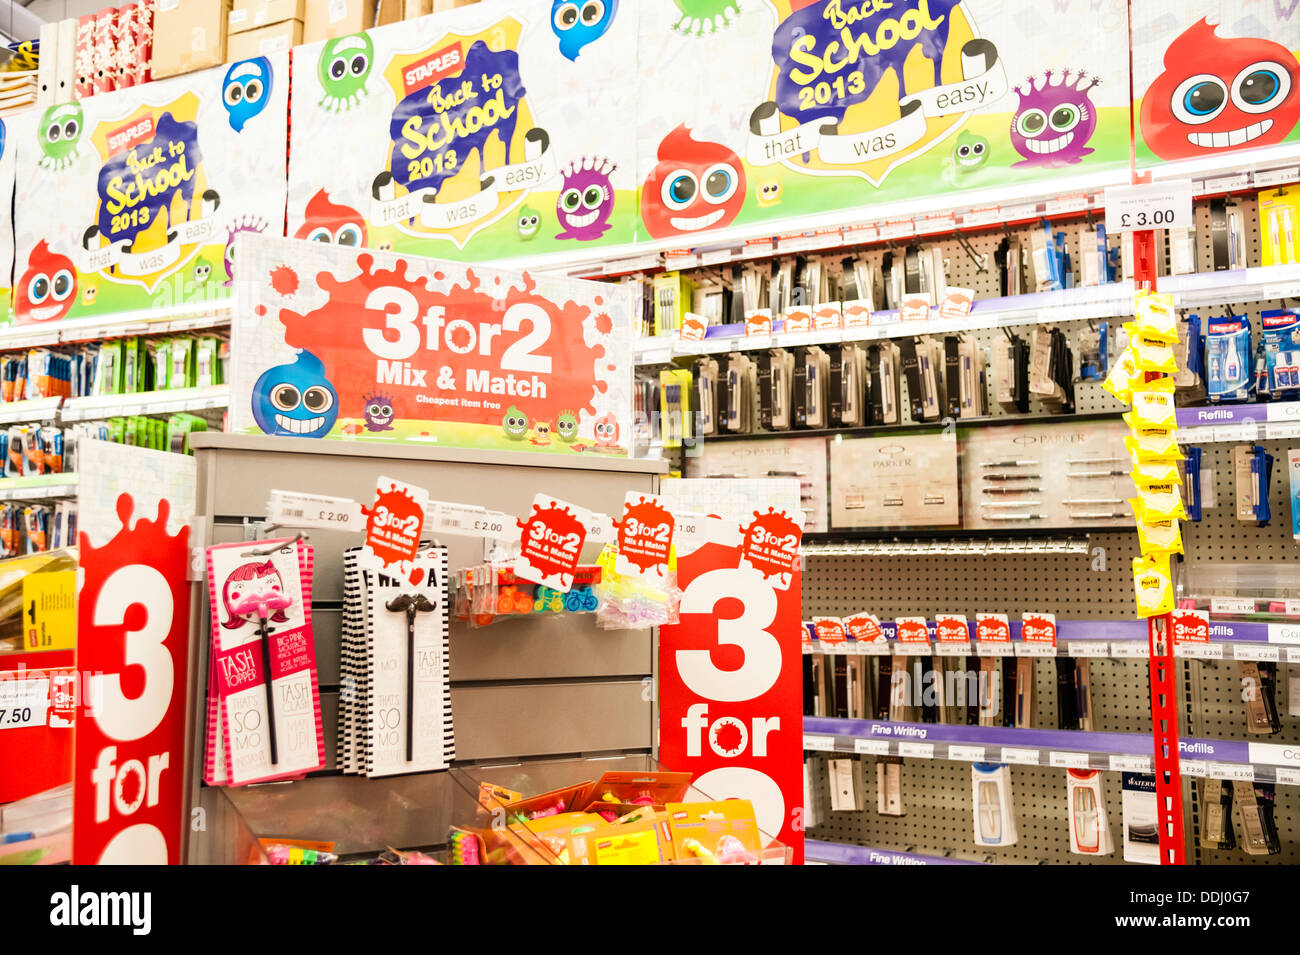 3 for 2 back to school stationery for sale in a staples store stock photo 60017223 alamy. Black Bedroom Furniture Sets. Home Design Ideas